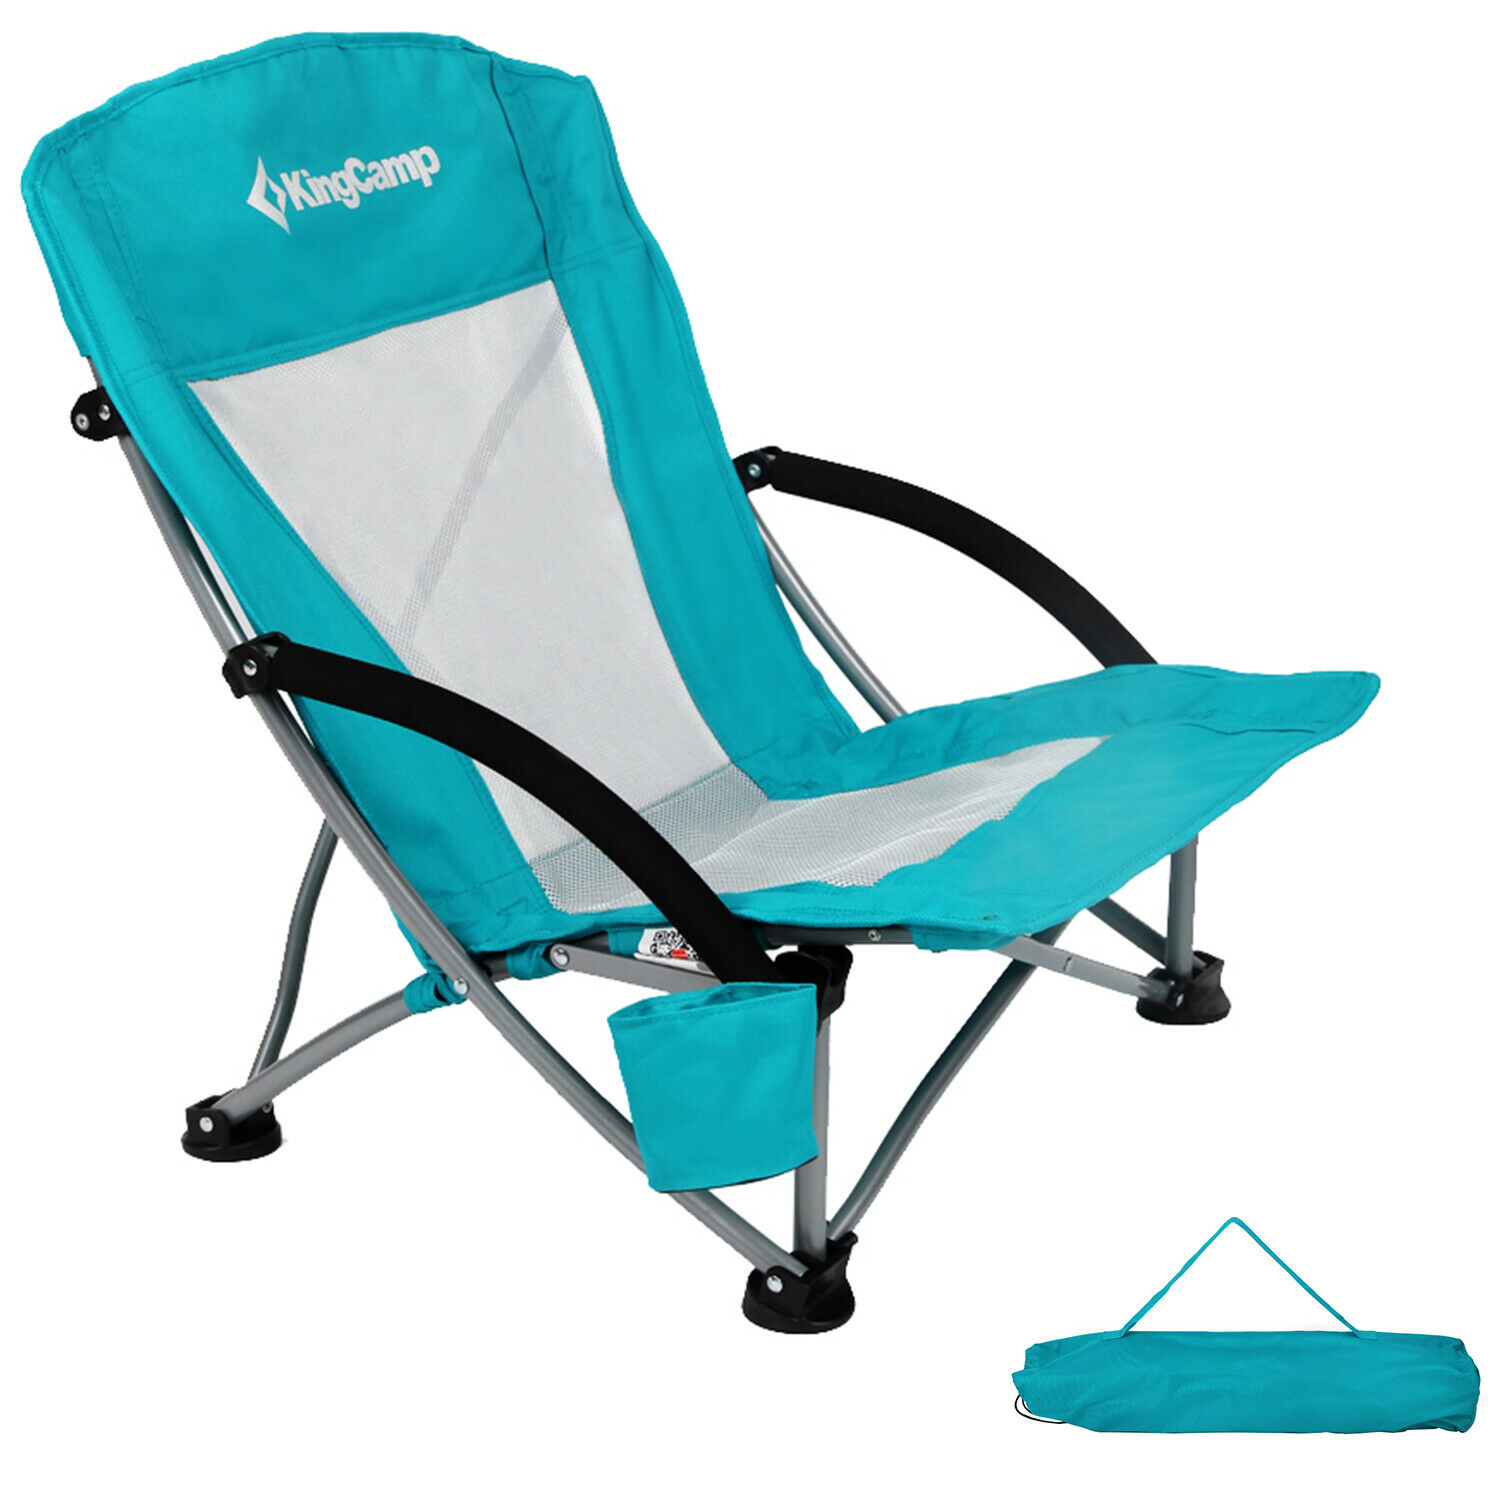 Kingcamp Low Sling Beach Chair Camping Concert Folding Chairs With Mesh Back